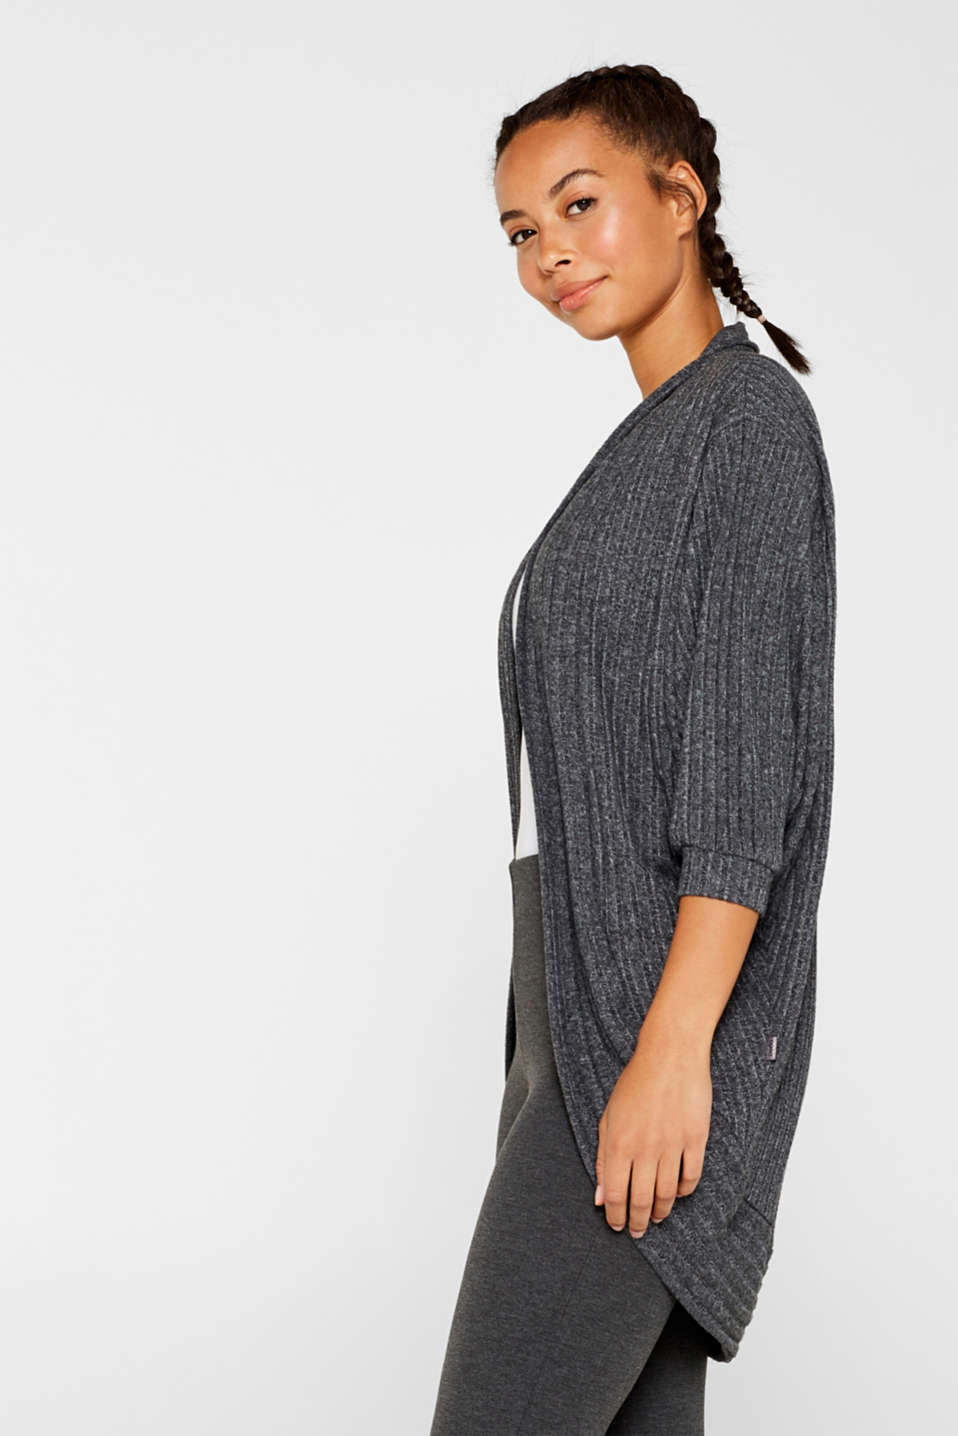 Esprit - Ribbed stretch jersey cardigan, recycled